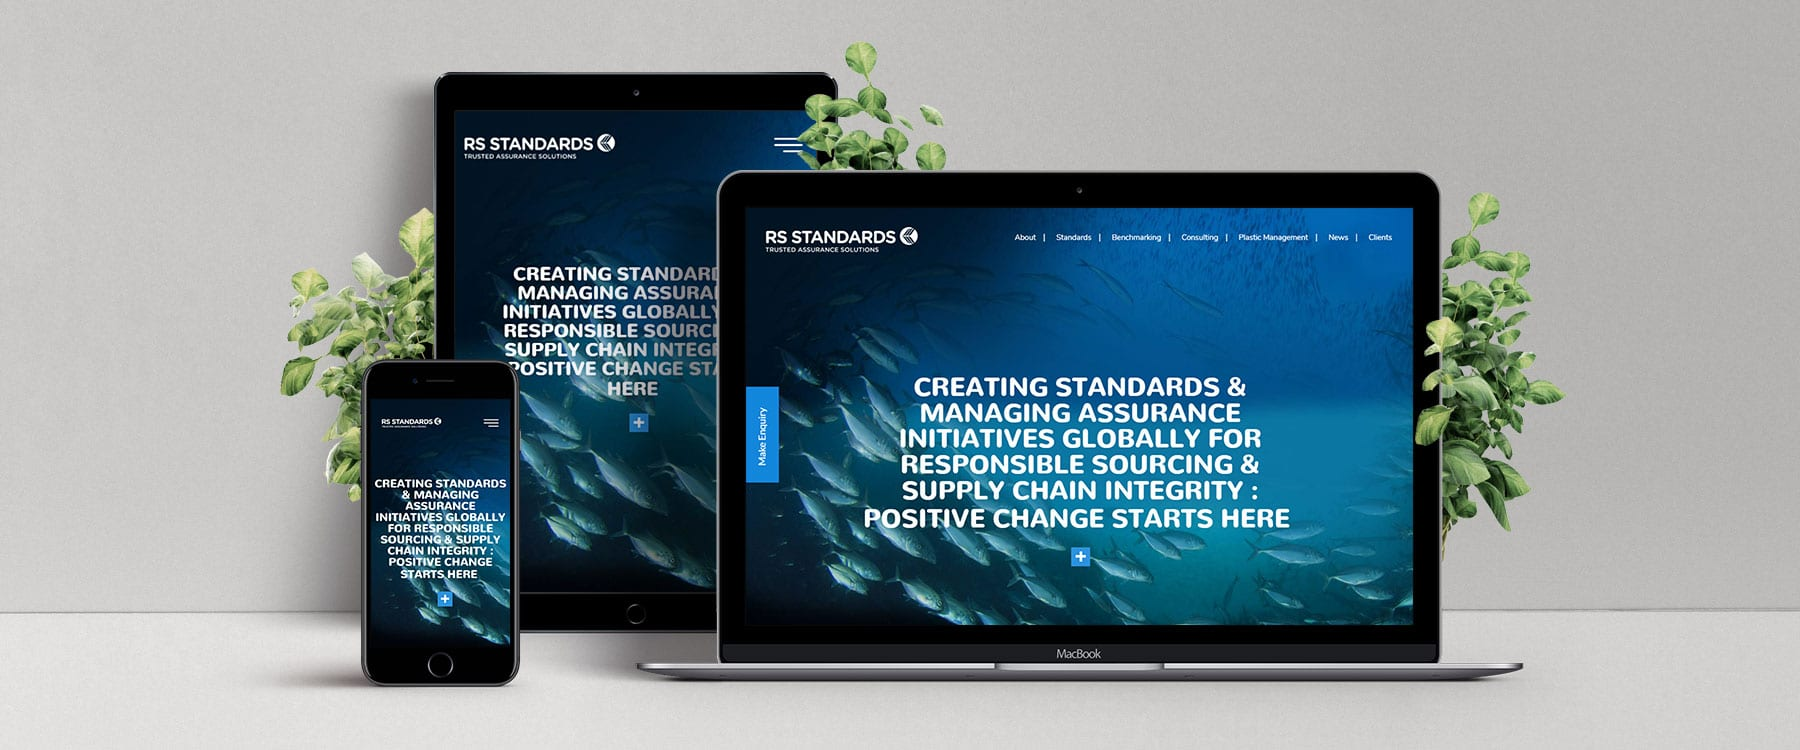 RS Standards Launch Their New Professional & Visually Engaging Website Image